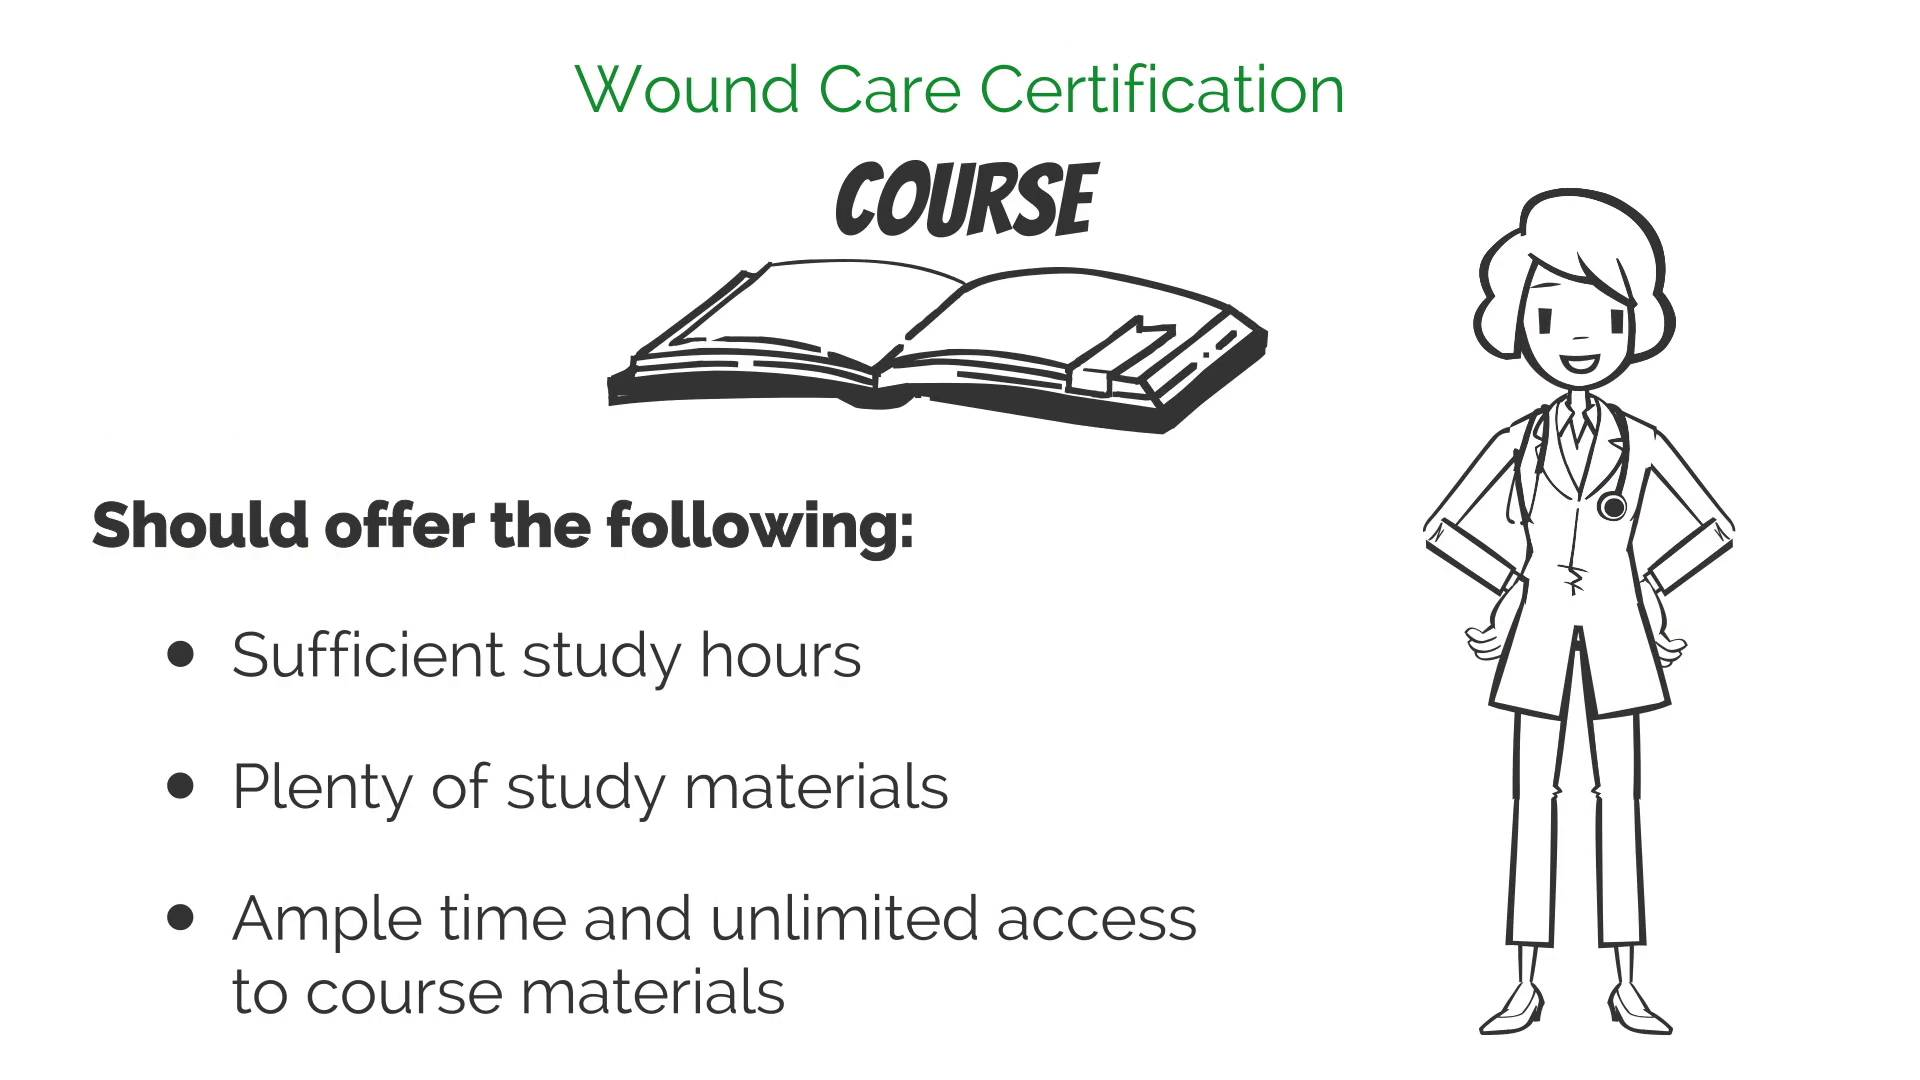 Cna ma wound certification course certified for nursing wound care xflitez Images